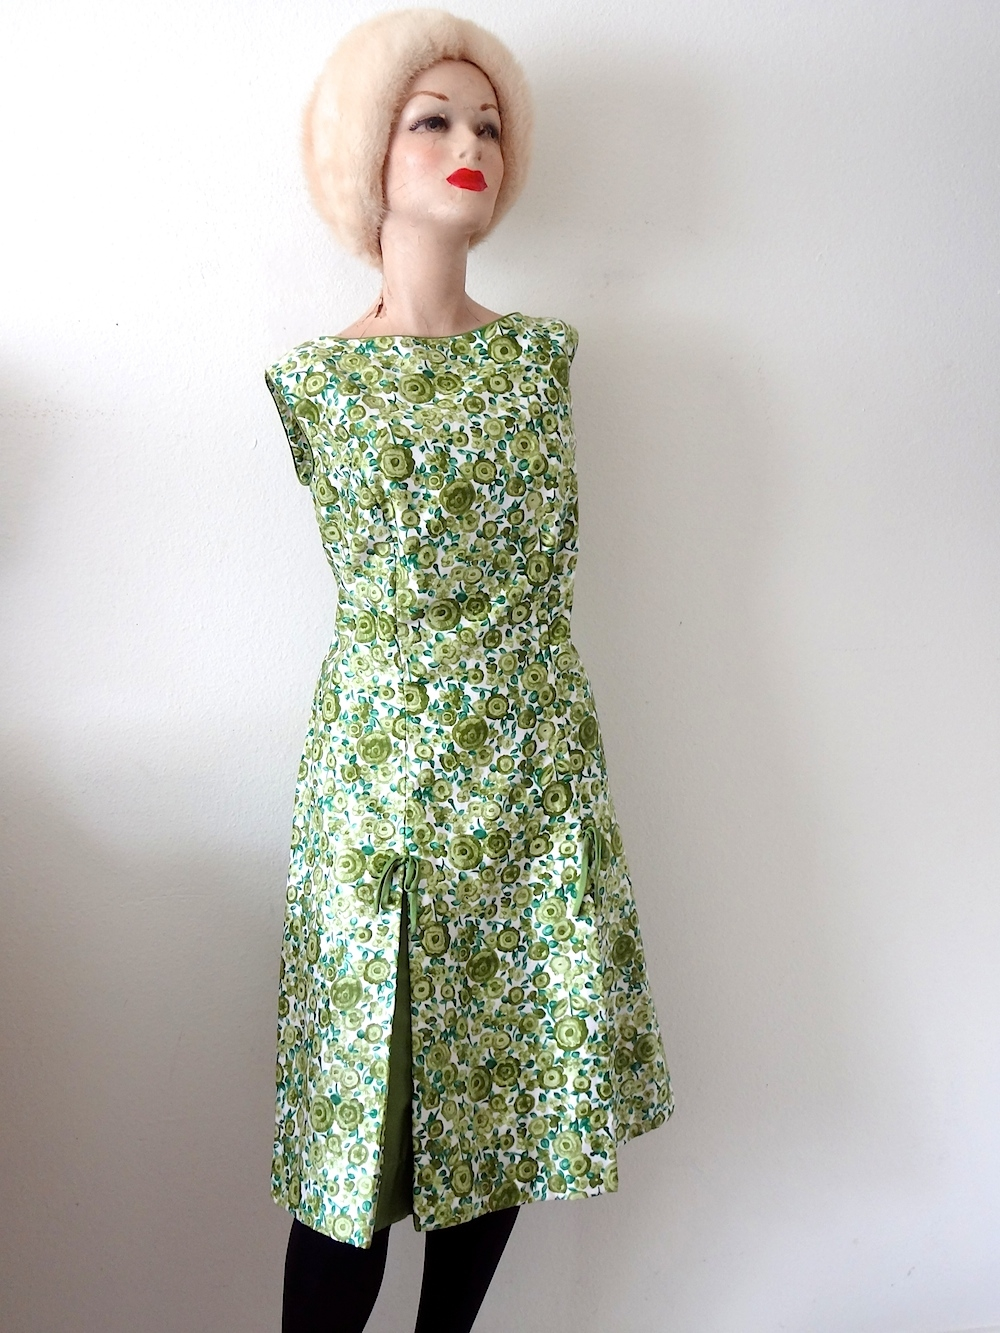 1960s Tori Richard dress